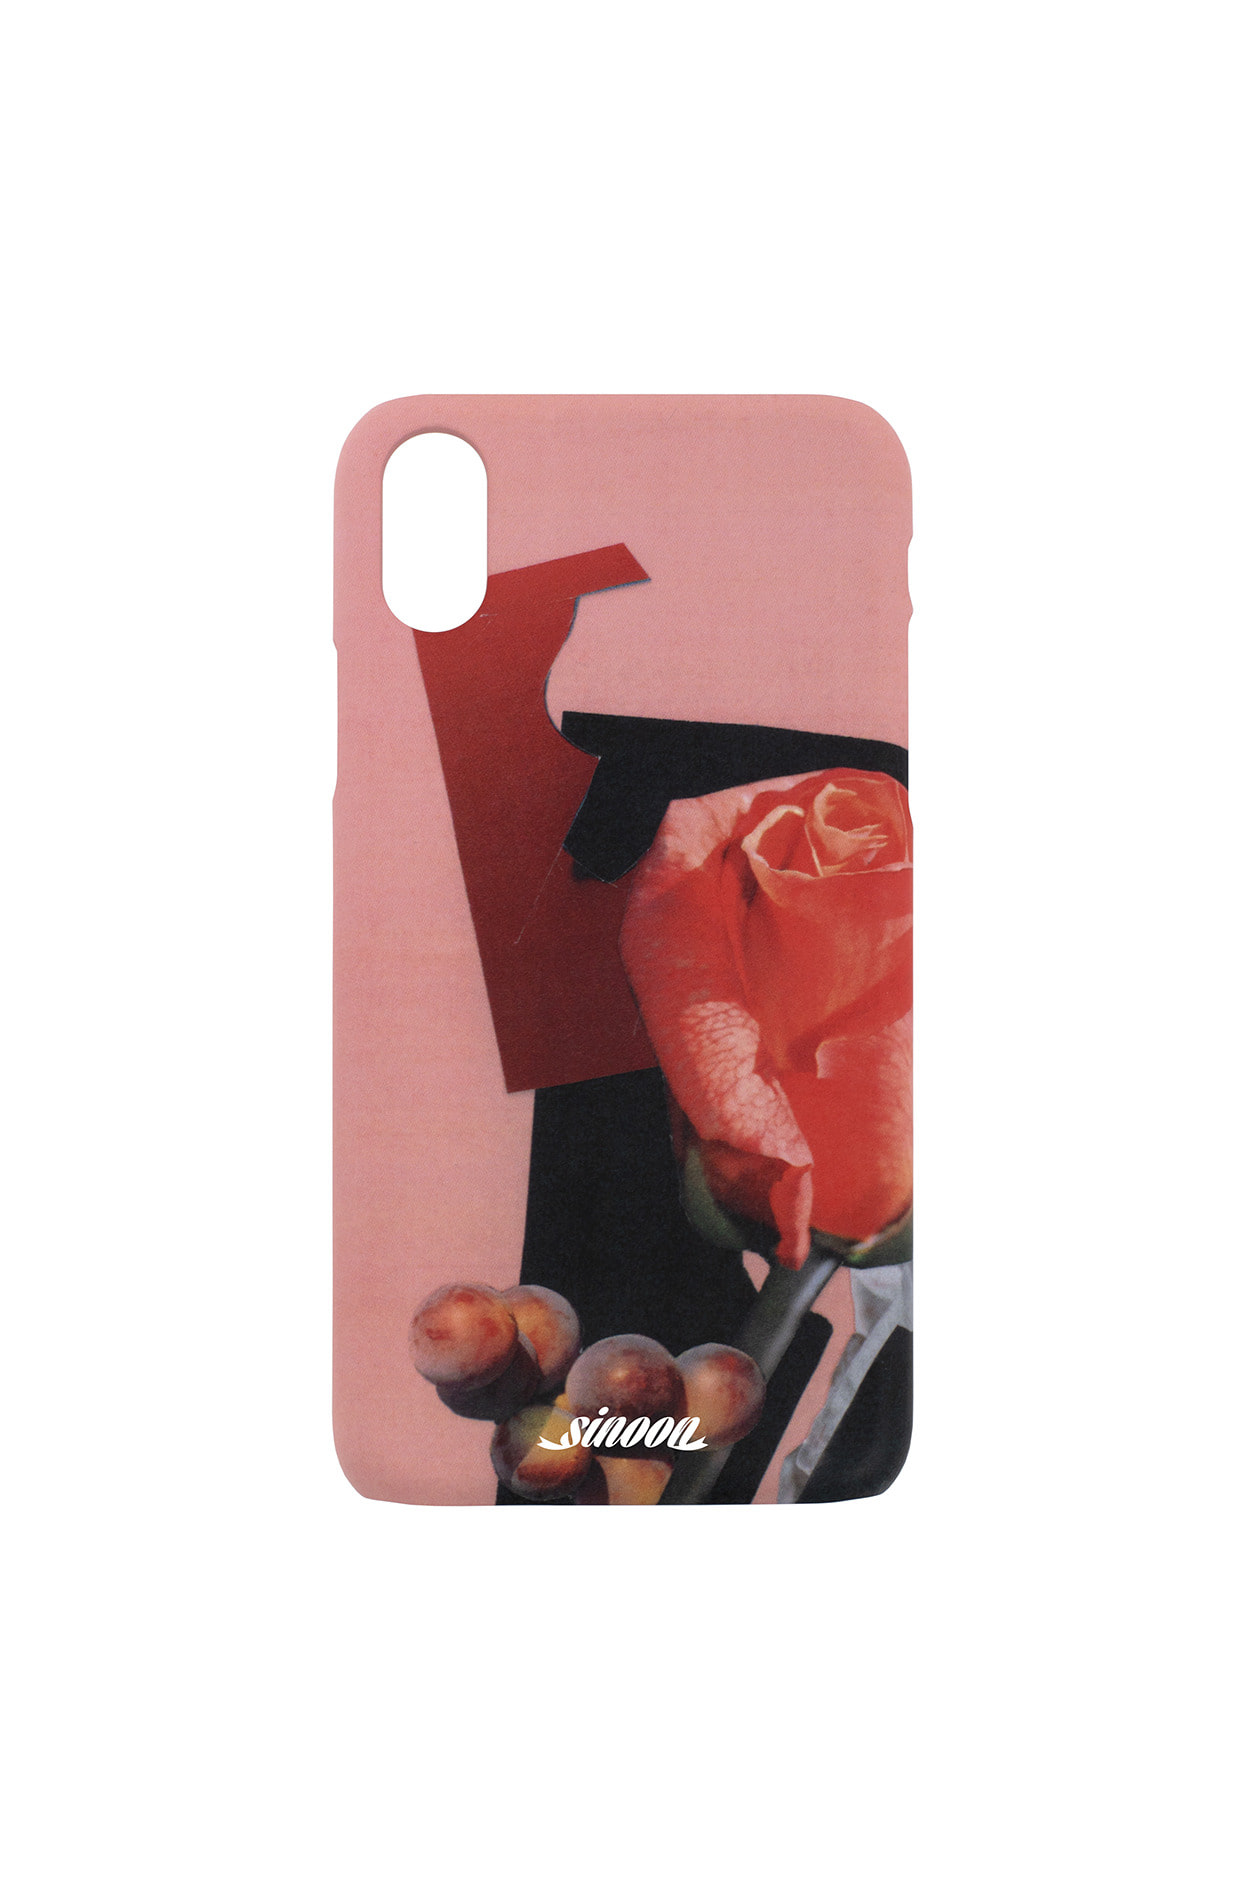 Collage hard case (roseberry)